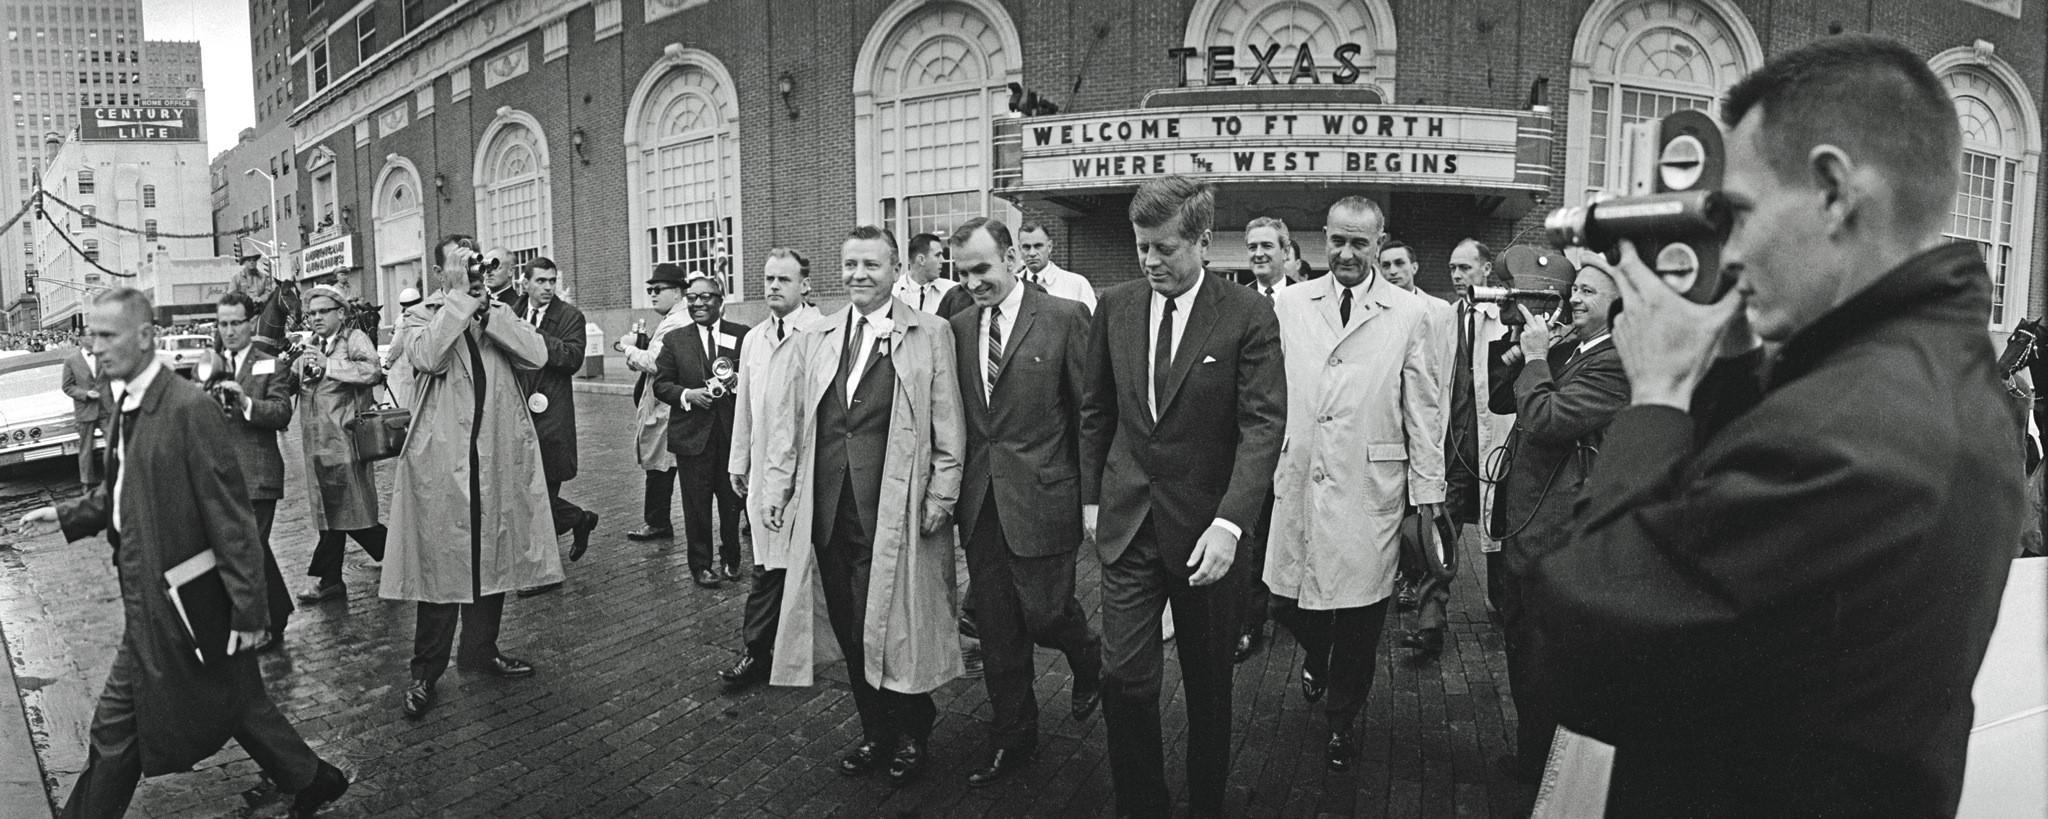 President Kennedy leaves the Hotel Texas in Fort Worth, the day he was assassinated, 1963 http://t.co/NX8acMD9ub